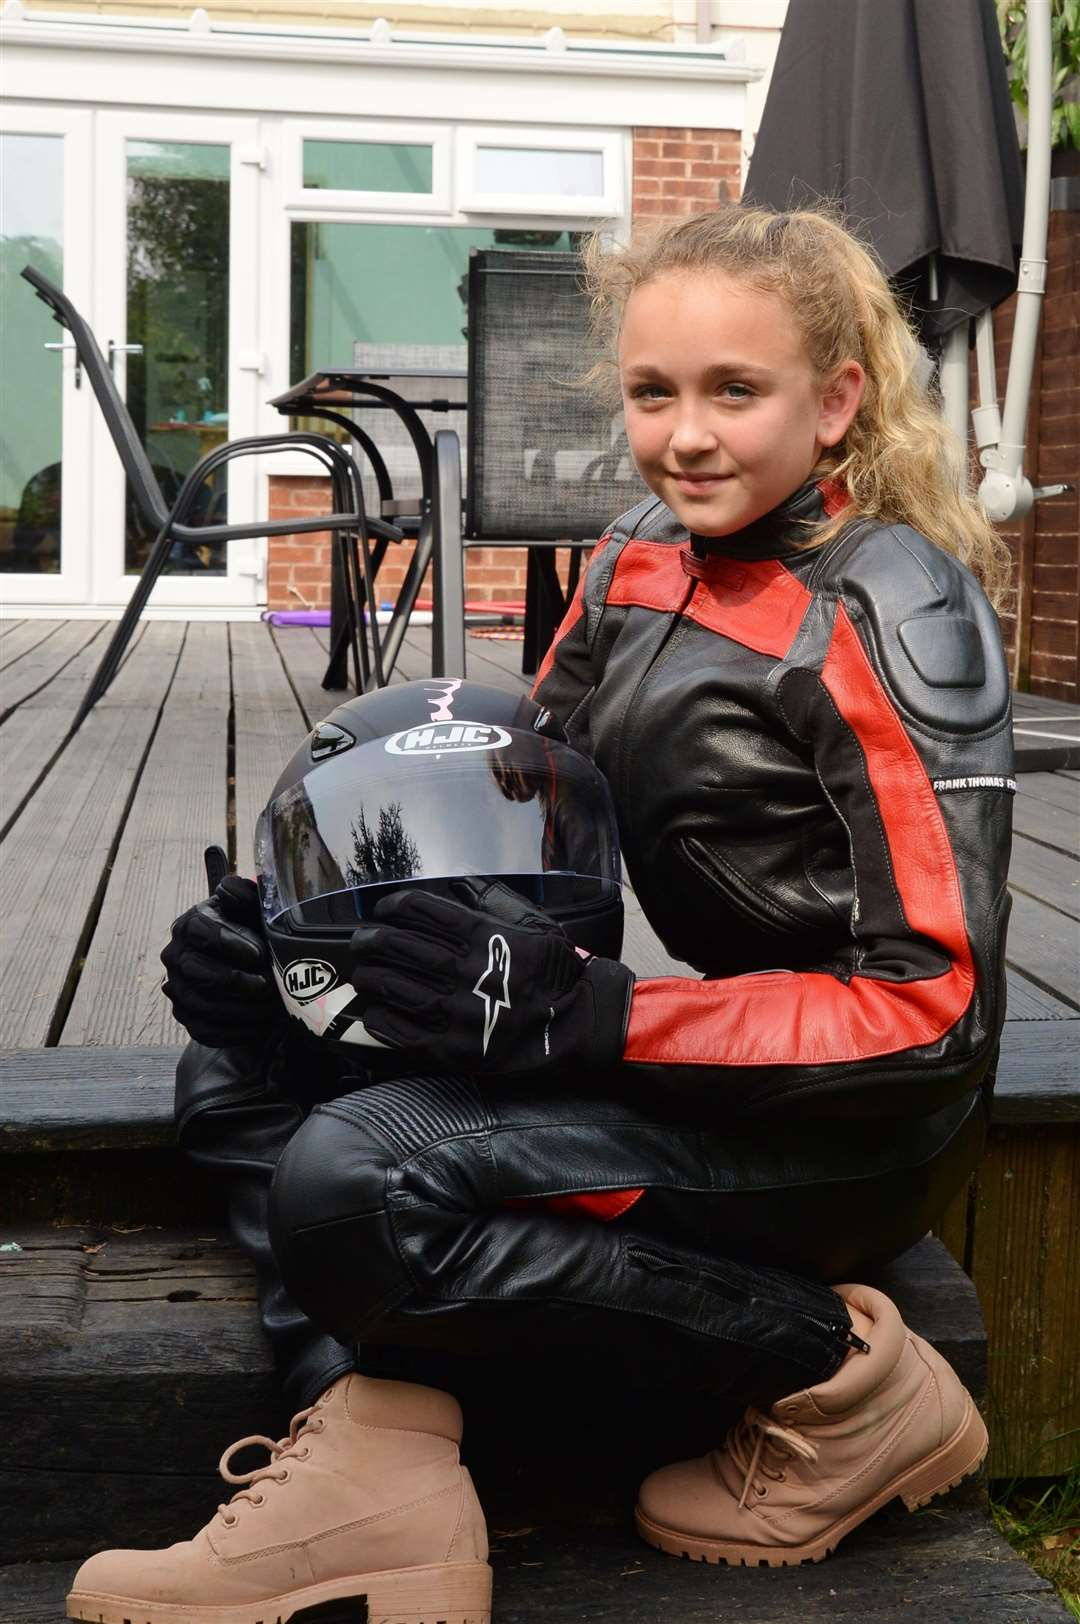 Faith Tacey, 11, from Farndon, who is campaigning for motorcyclists to wear protective clothing. (4165707)